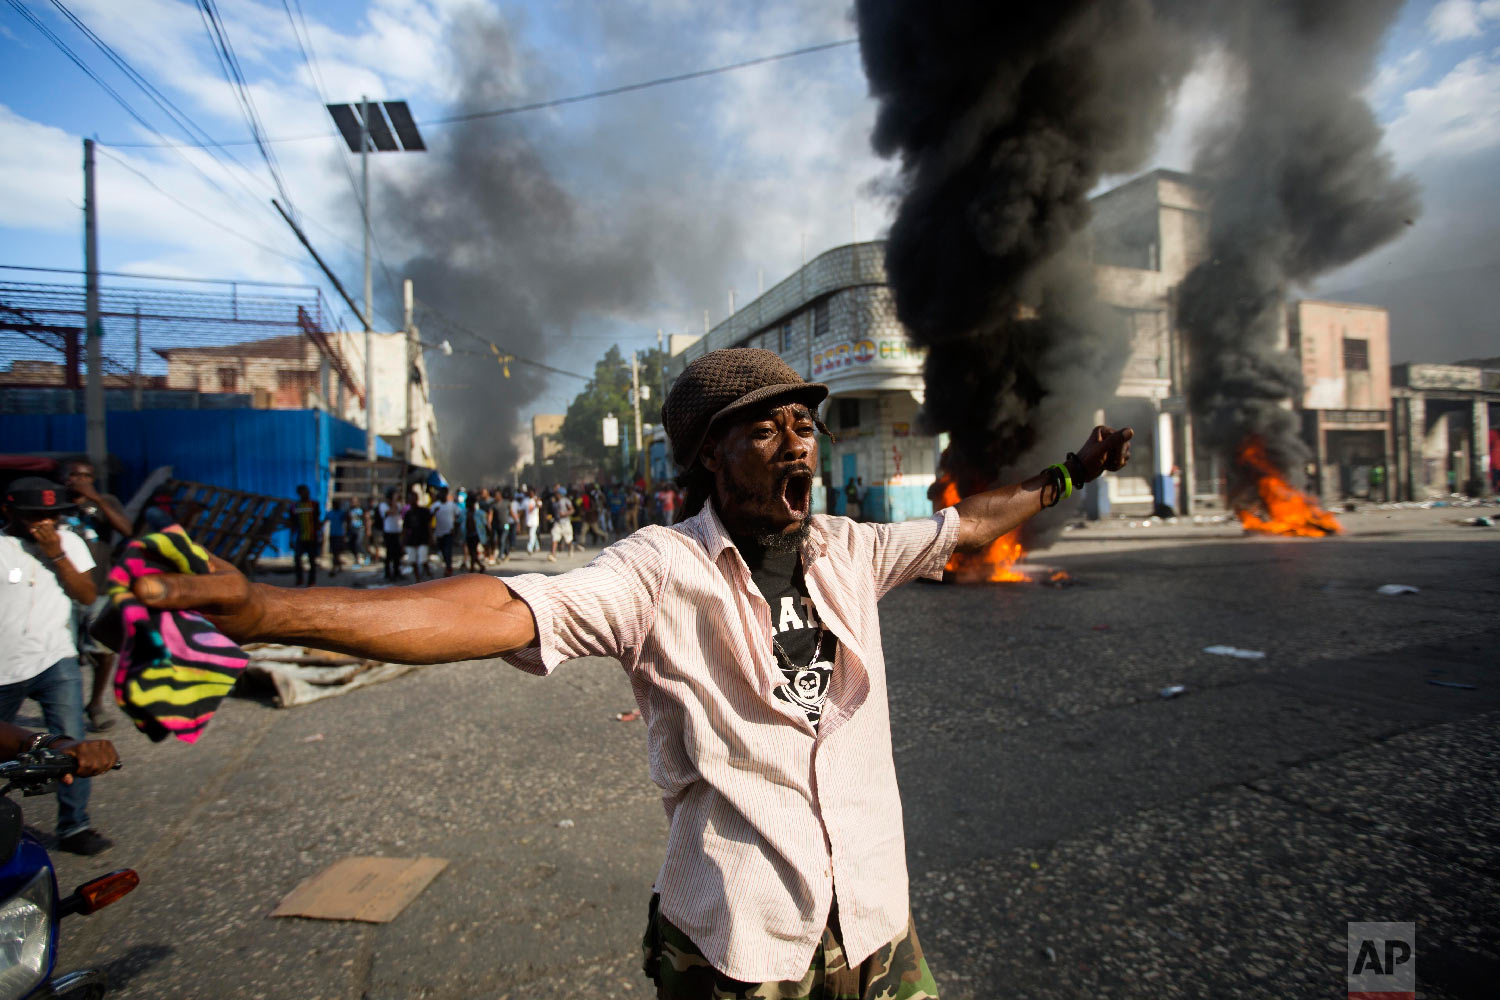 A demonstrator chants anti-government slogans during a protest demanding to know how Petro Caribe funds have been used by the current and past administrations, on the sidelines of events marking the 215th anniversary of independence Battle of Vertieres in Port-au-Prince, Haiti, Sunday, Nov. 18, 2018. (AP Photo/Dieu Nalio Chery)